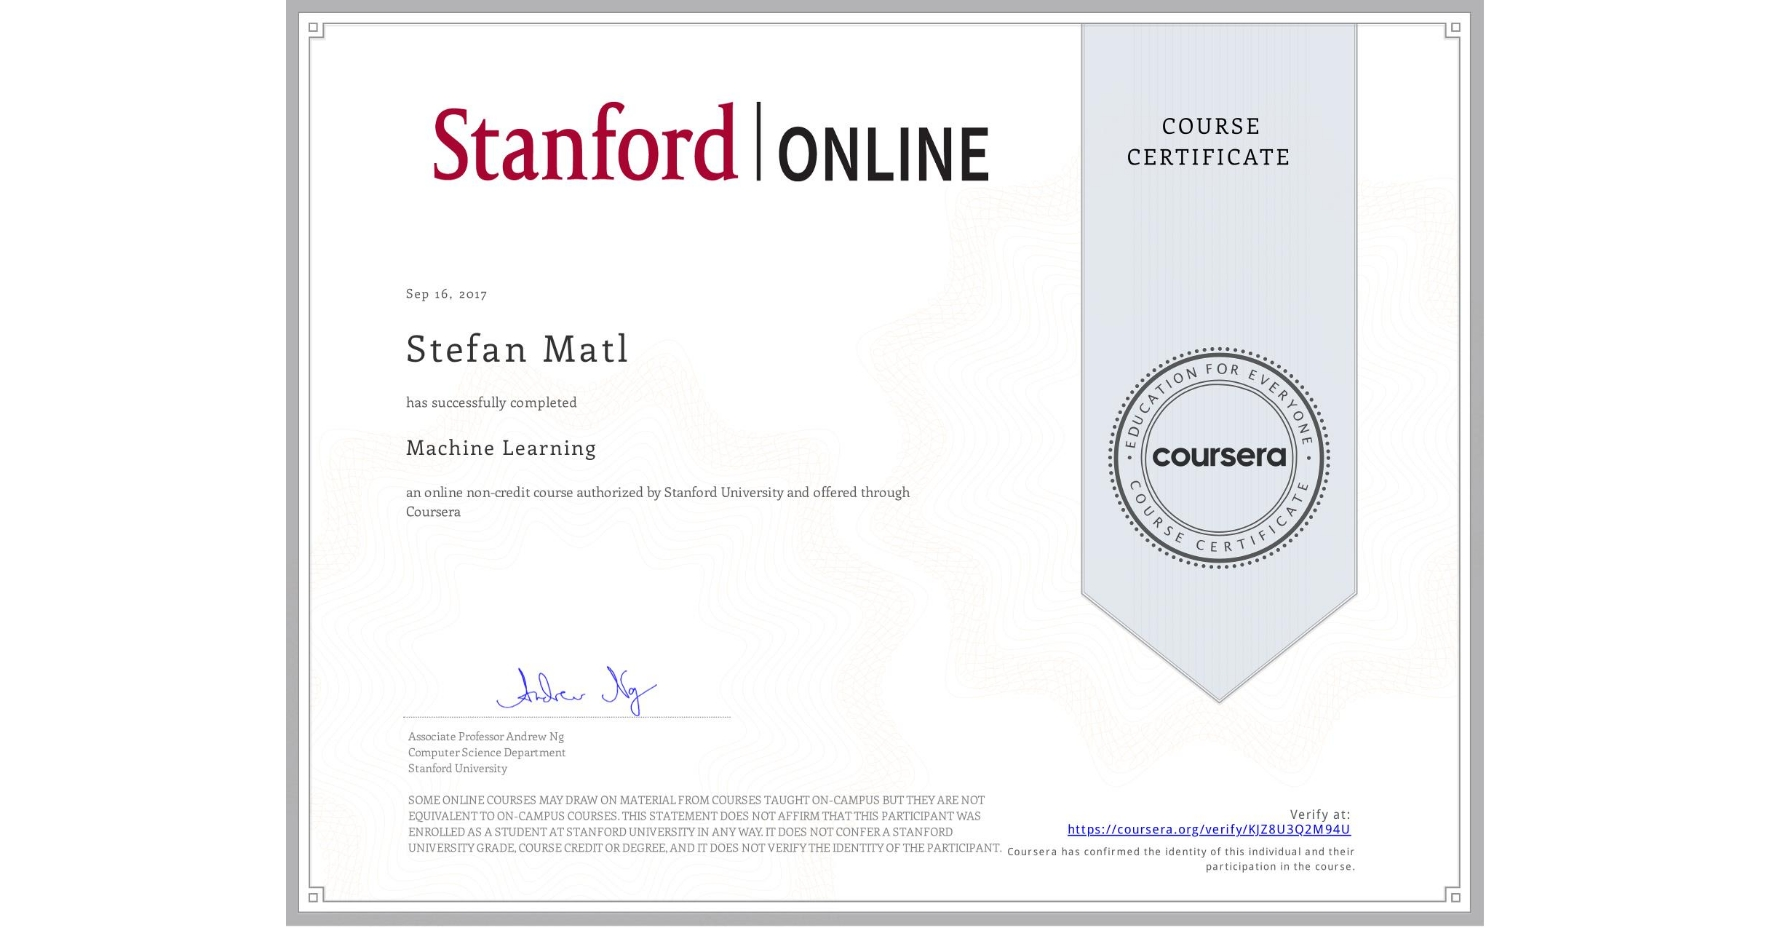 View certificate for Stefan Matl, Machine Learning, an online non-credit course authorized by Stanford University and offered through Coursera